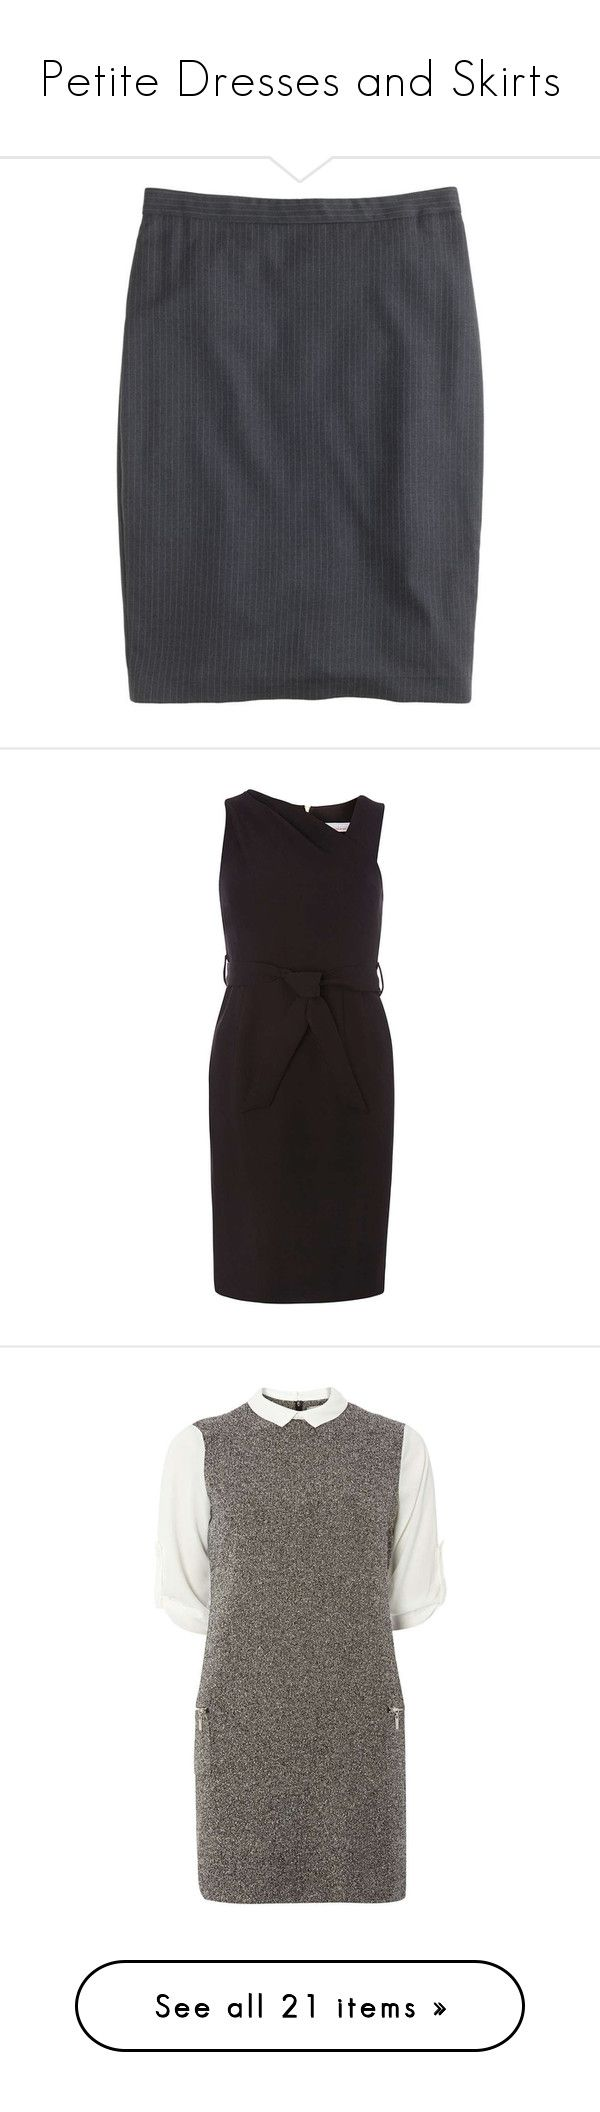 """""""Petite Dresses and Skirts"""" by samib2500 ❤ liked on Polyvore featuring skirts, petite, petite long skirts, long pencil skirt, draped pencil skirt, j crew skirts, petite pencil skirt, dresses, black and petite pencil dress"""